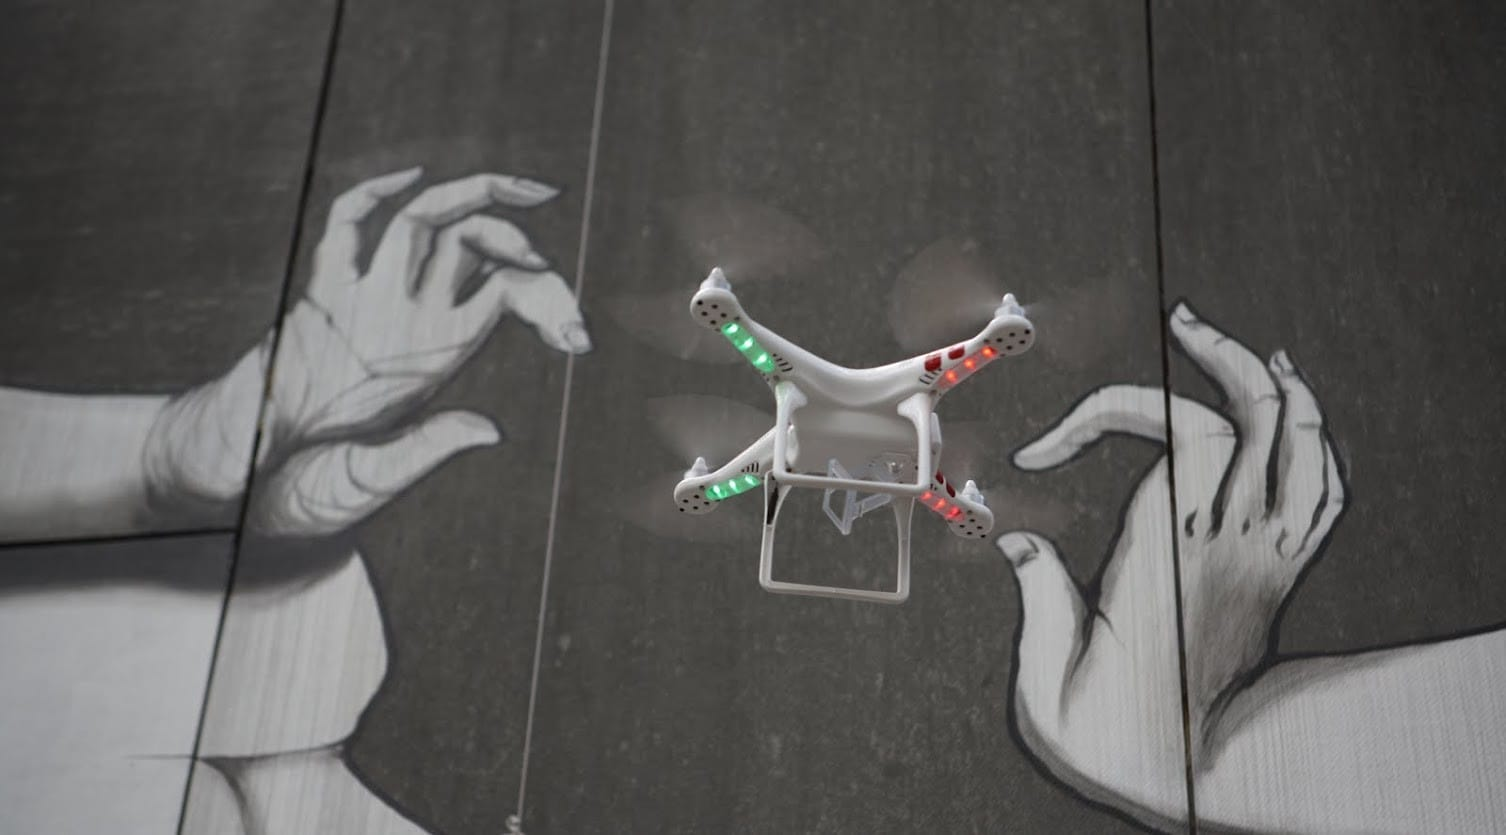 DJI Phantom airbourne